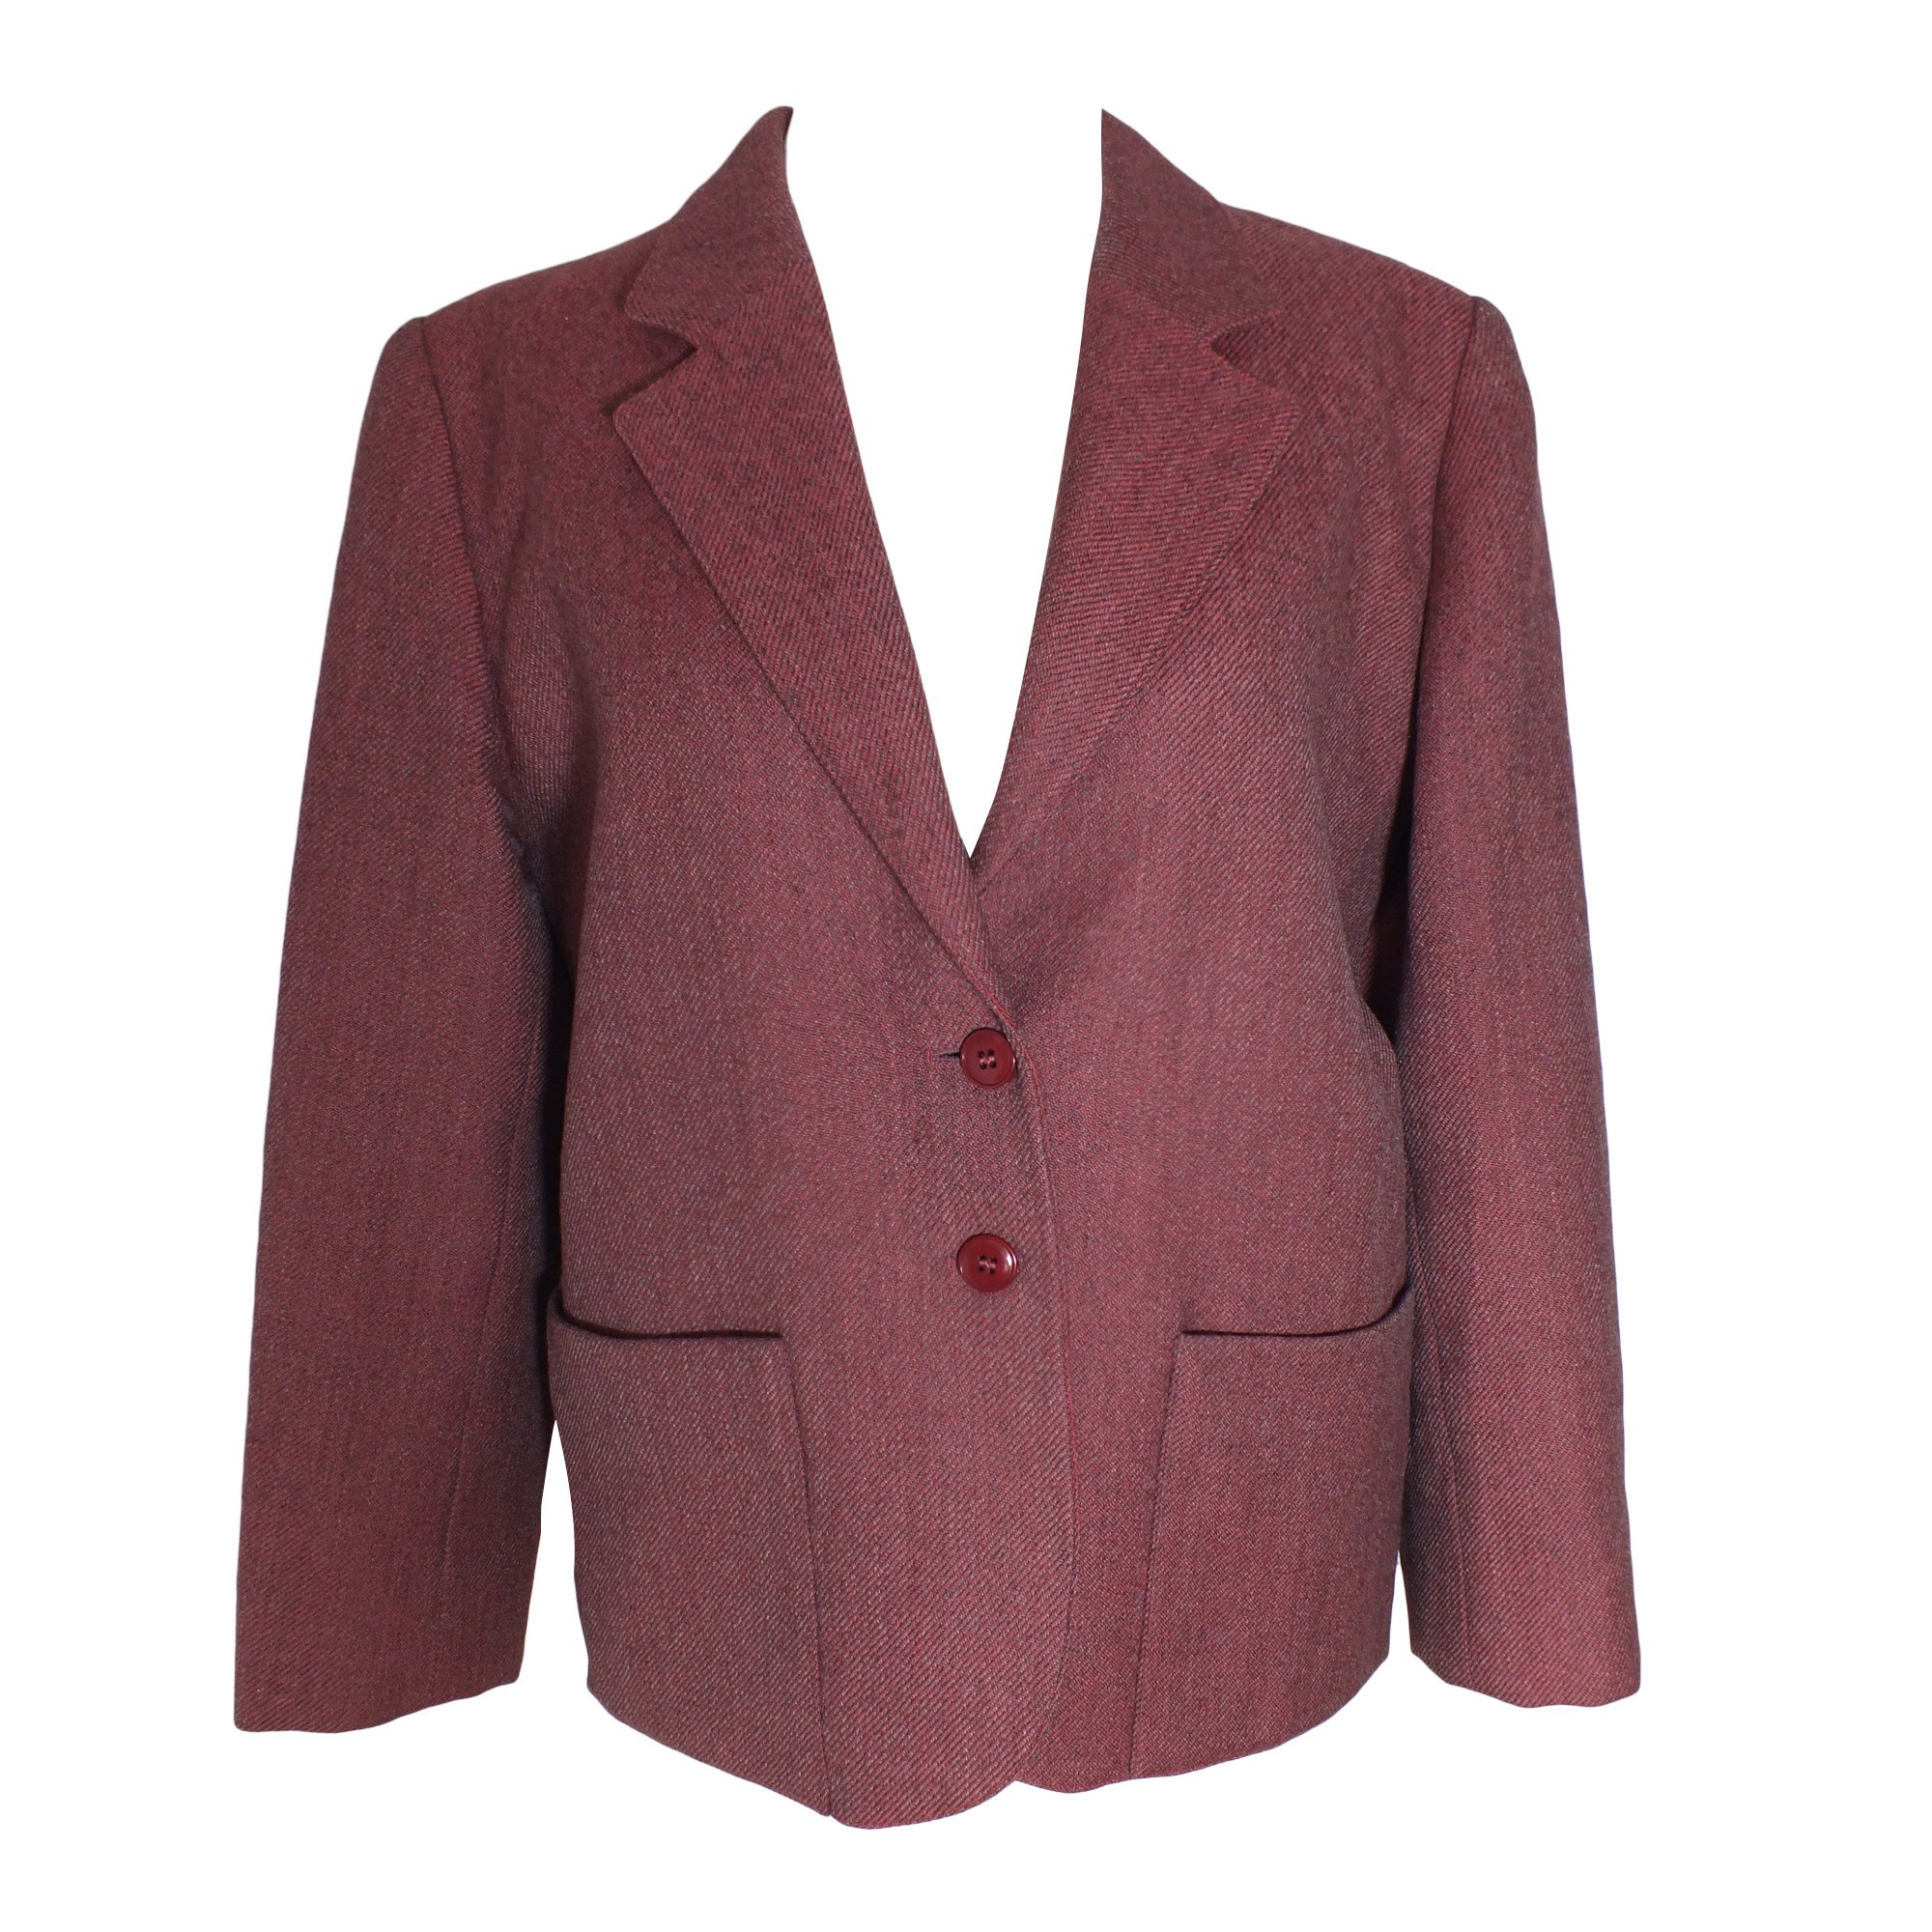 Veste CACHAREL Rose, fuschia, vieux rose